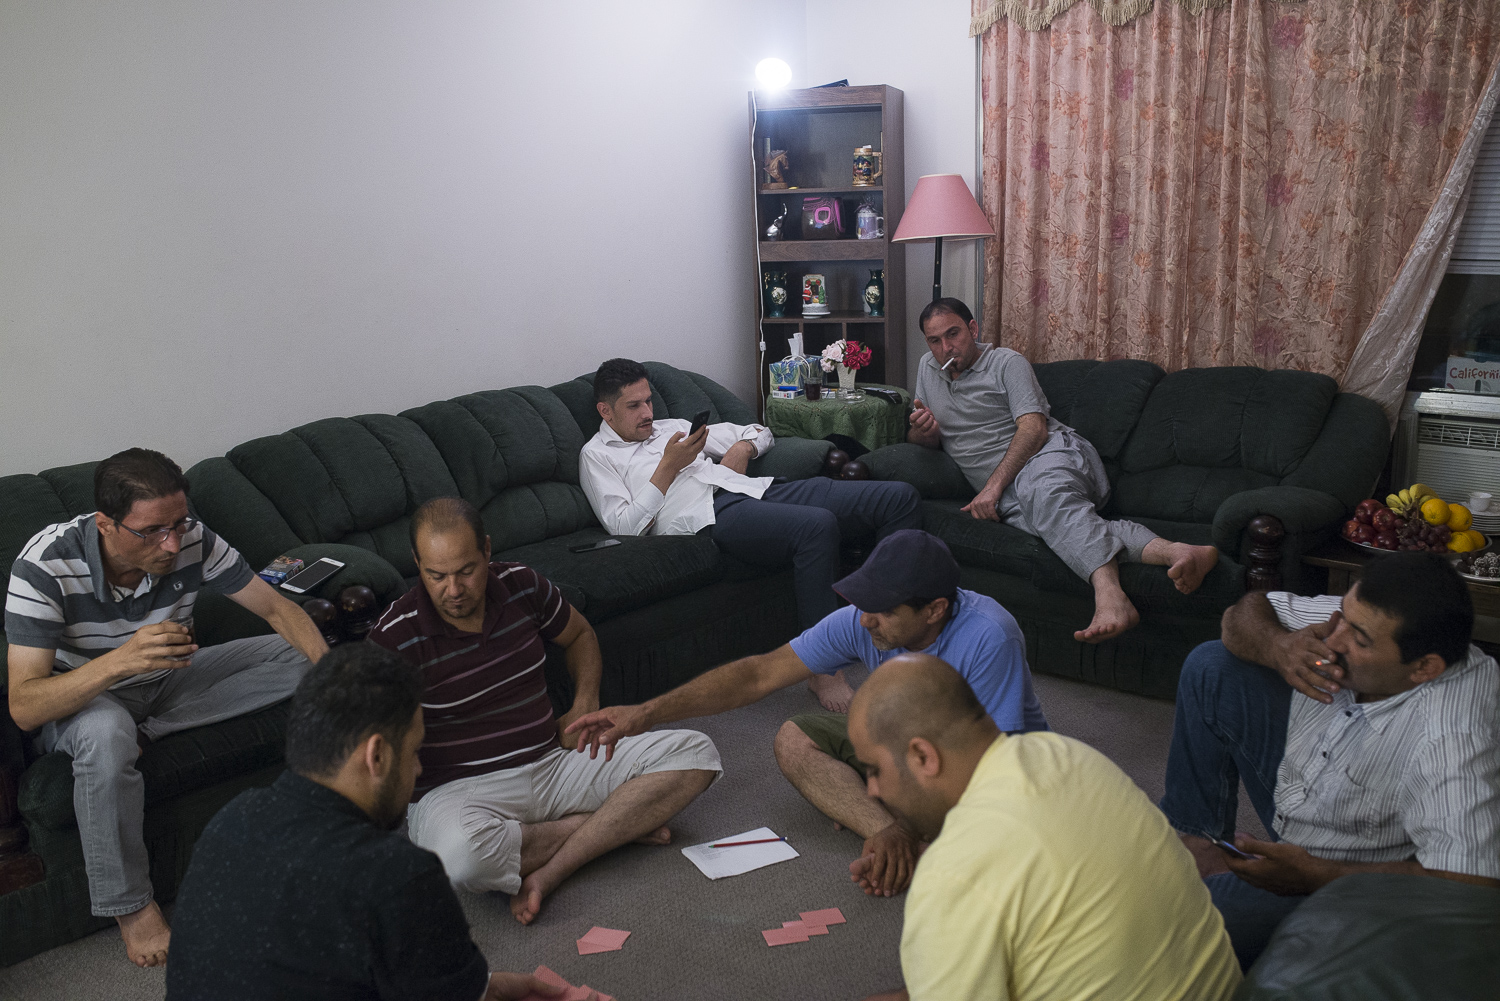 Fellow refugees from Syria often gather at each other's homes to hang out in the evening. They share news and gossip, drink tea and coffee along with snacks.